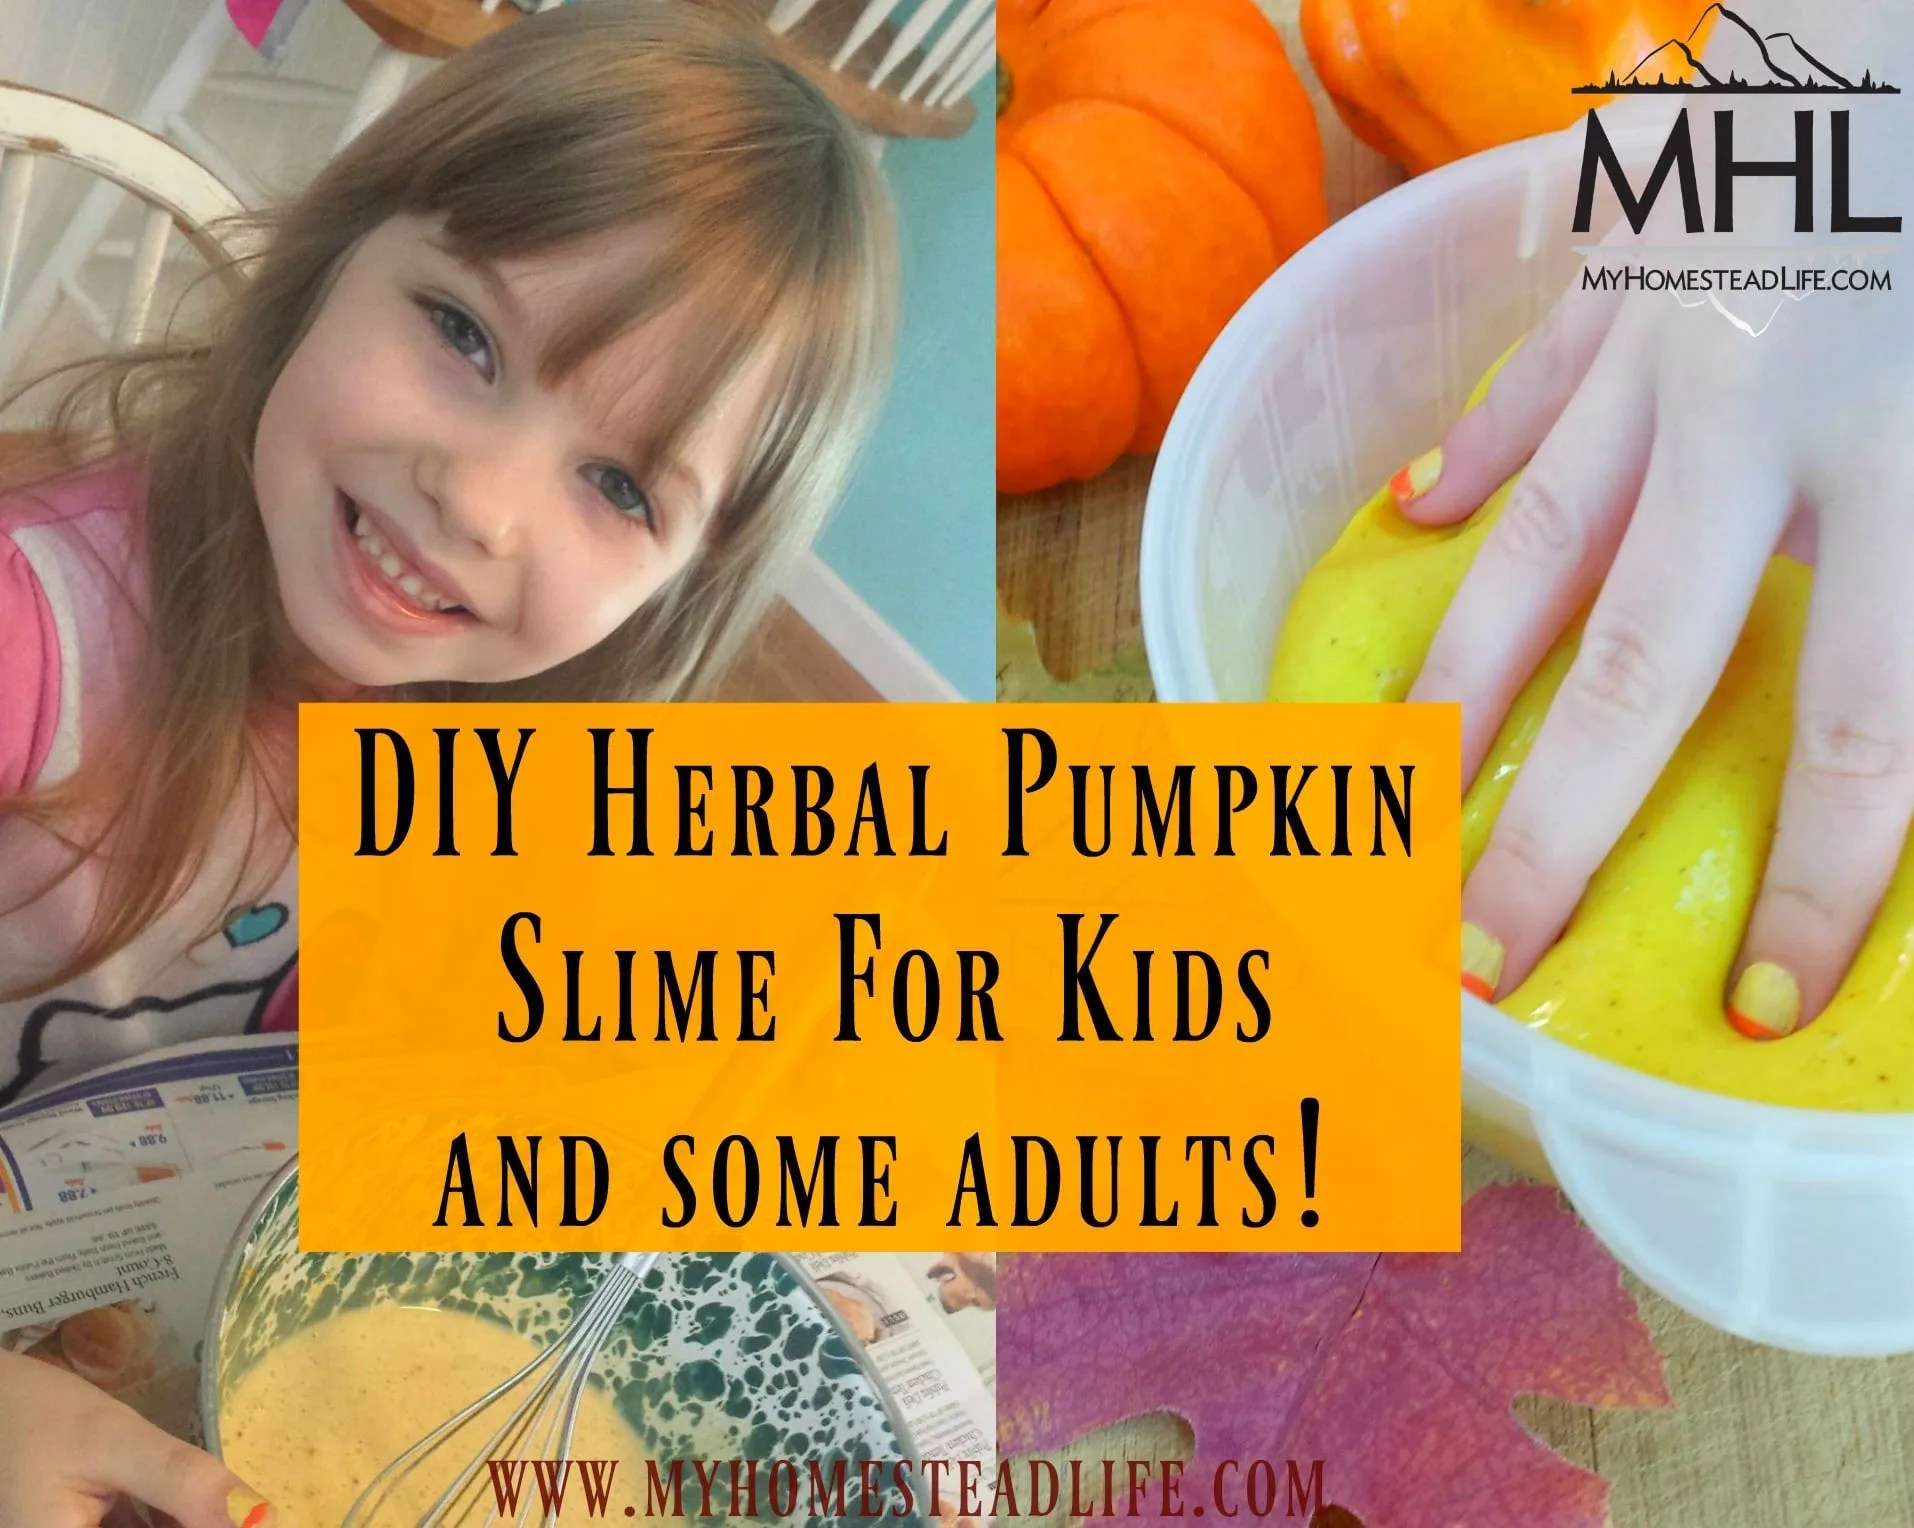 DIY Herbal Pumpkin Slime For Kids- and some adults!